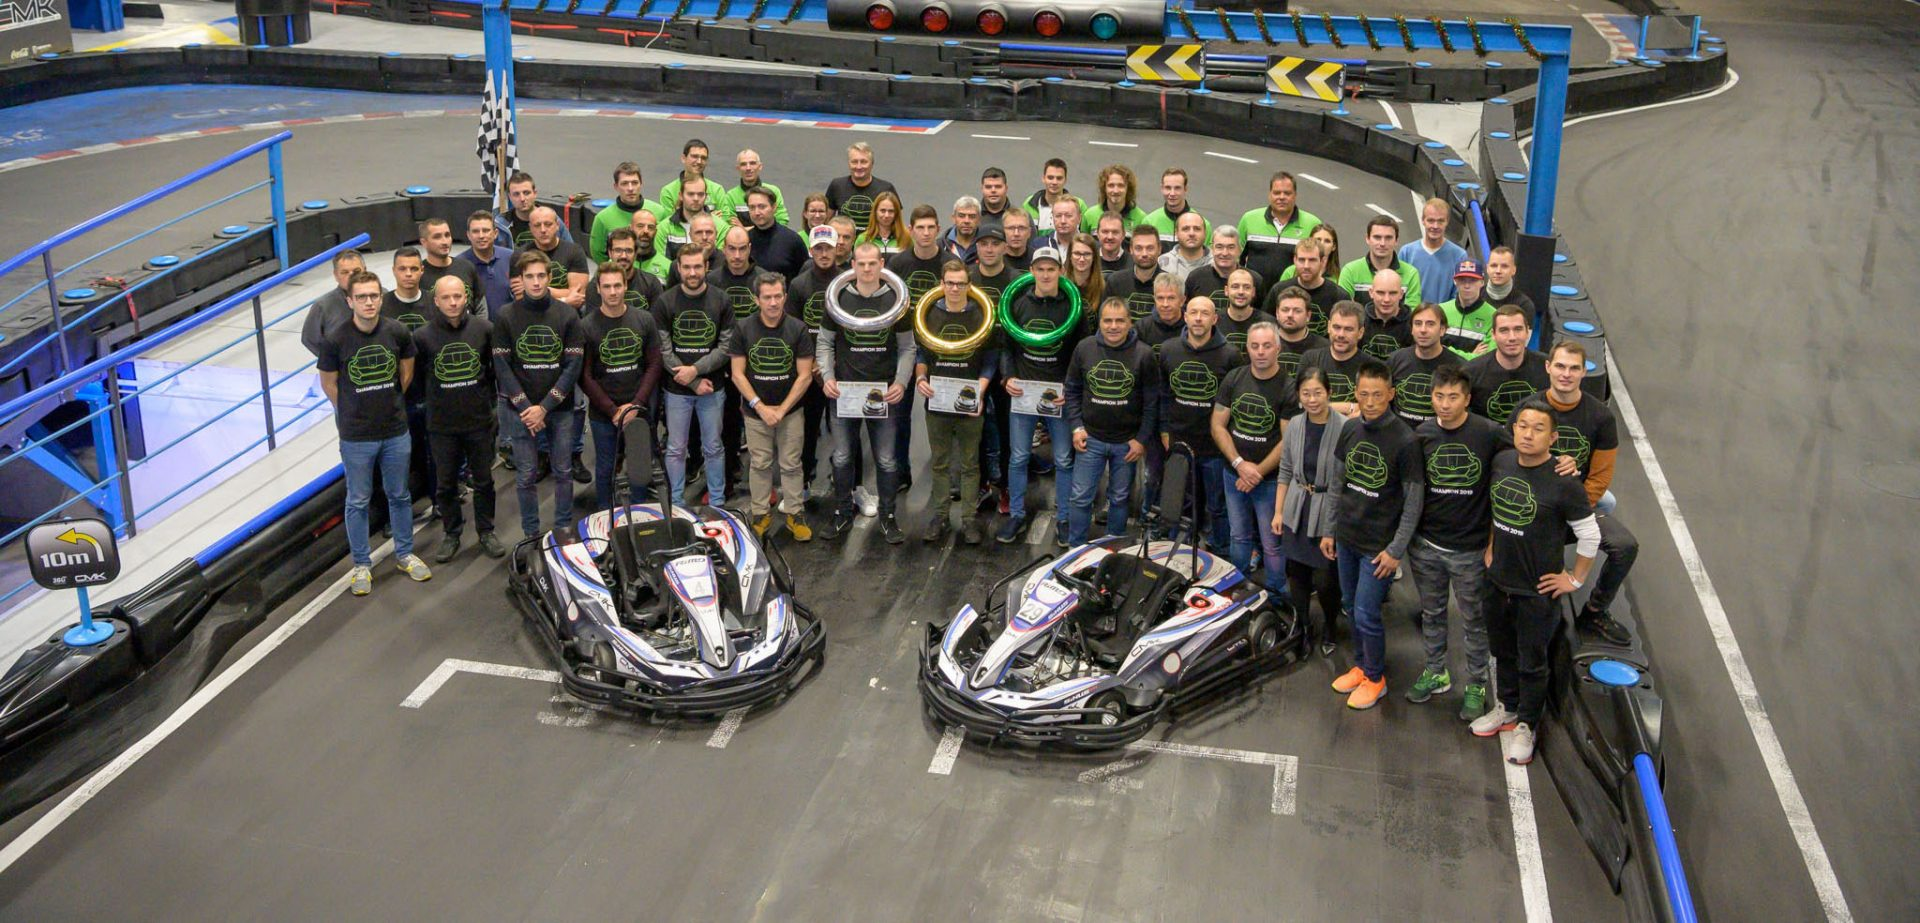 The Battle of Champions: Winners of National Titles Race Go-Karts